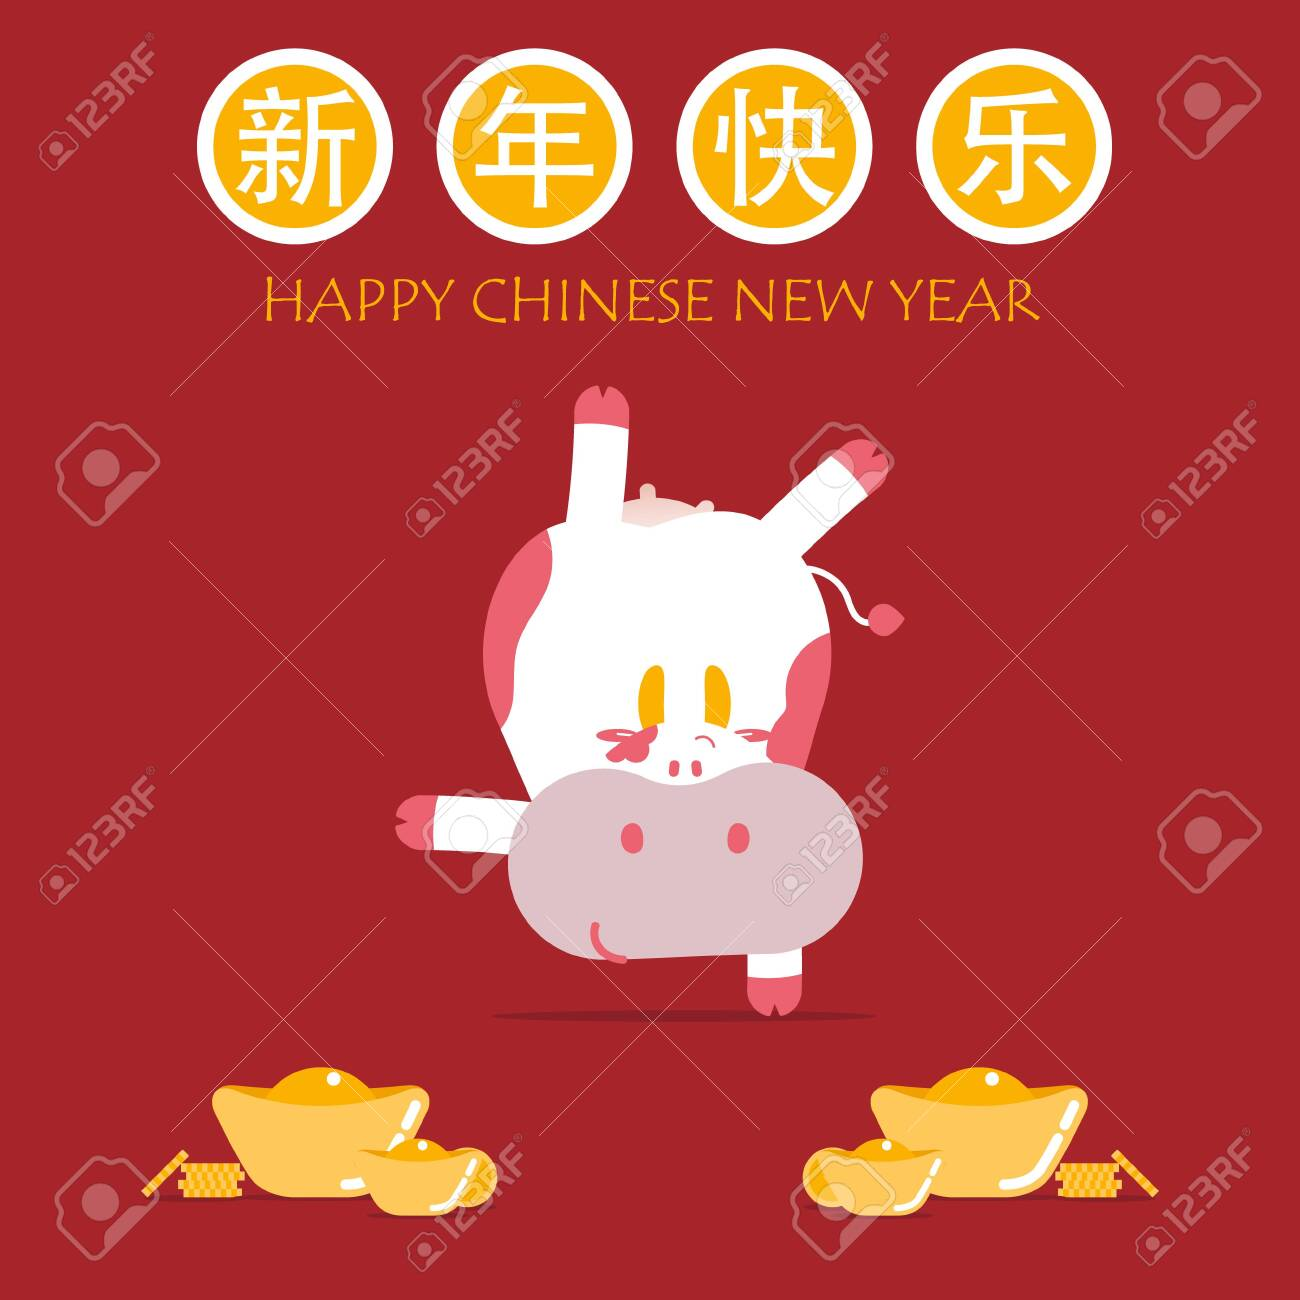 happy chinese new year with text, year of cow, asian culture festival concept with gold in red background, flat vector illustration cartoon character design - 154335032